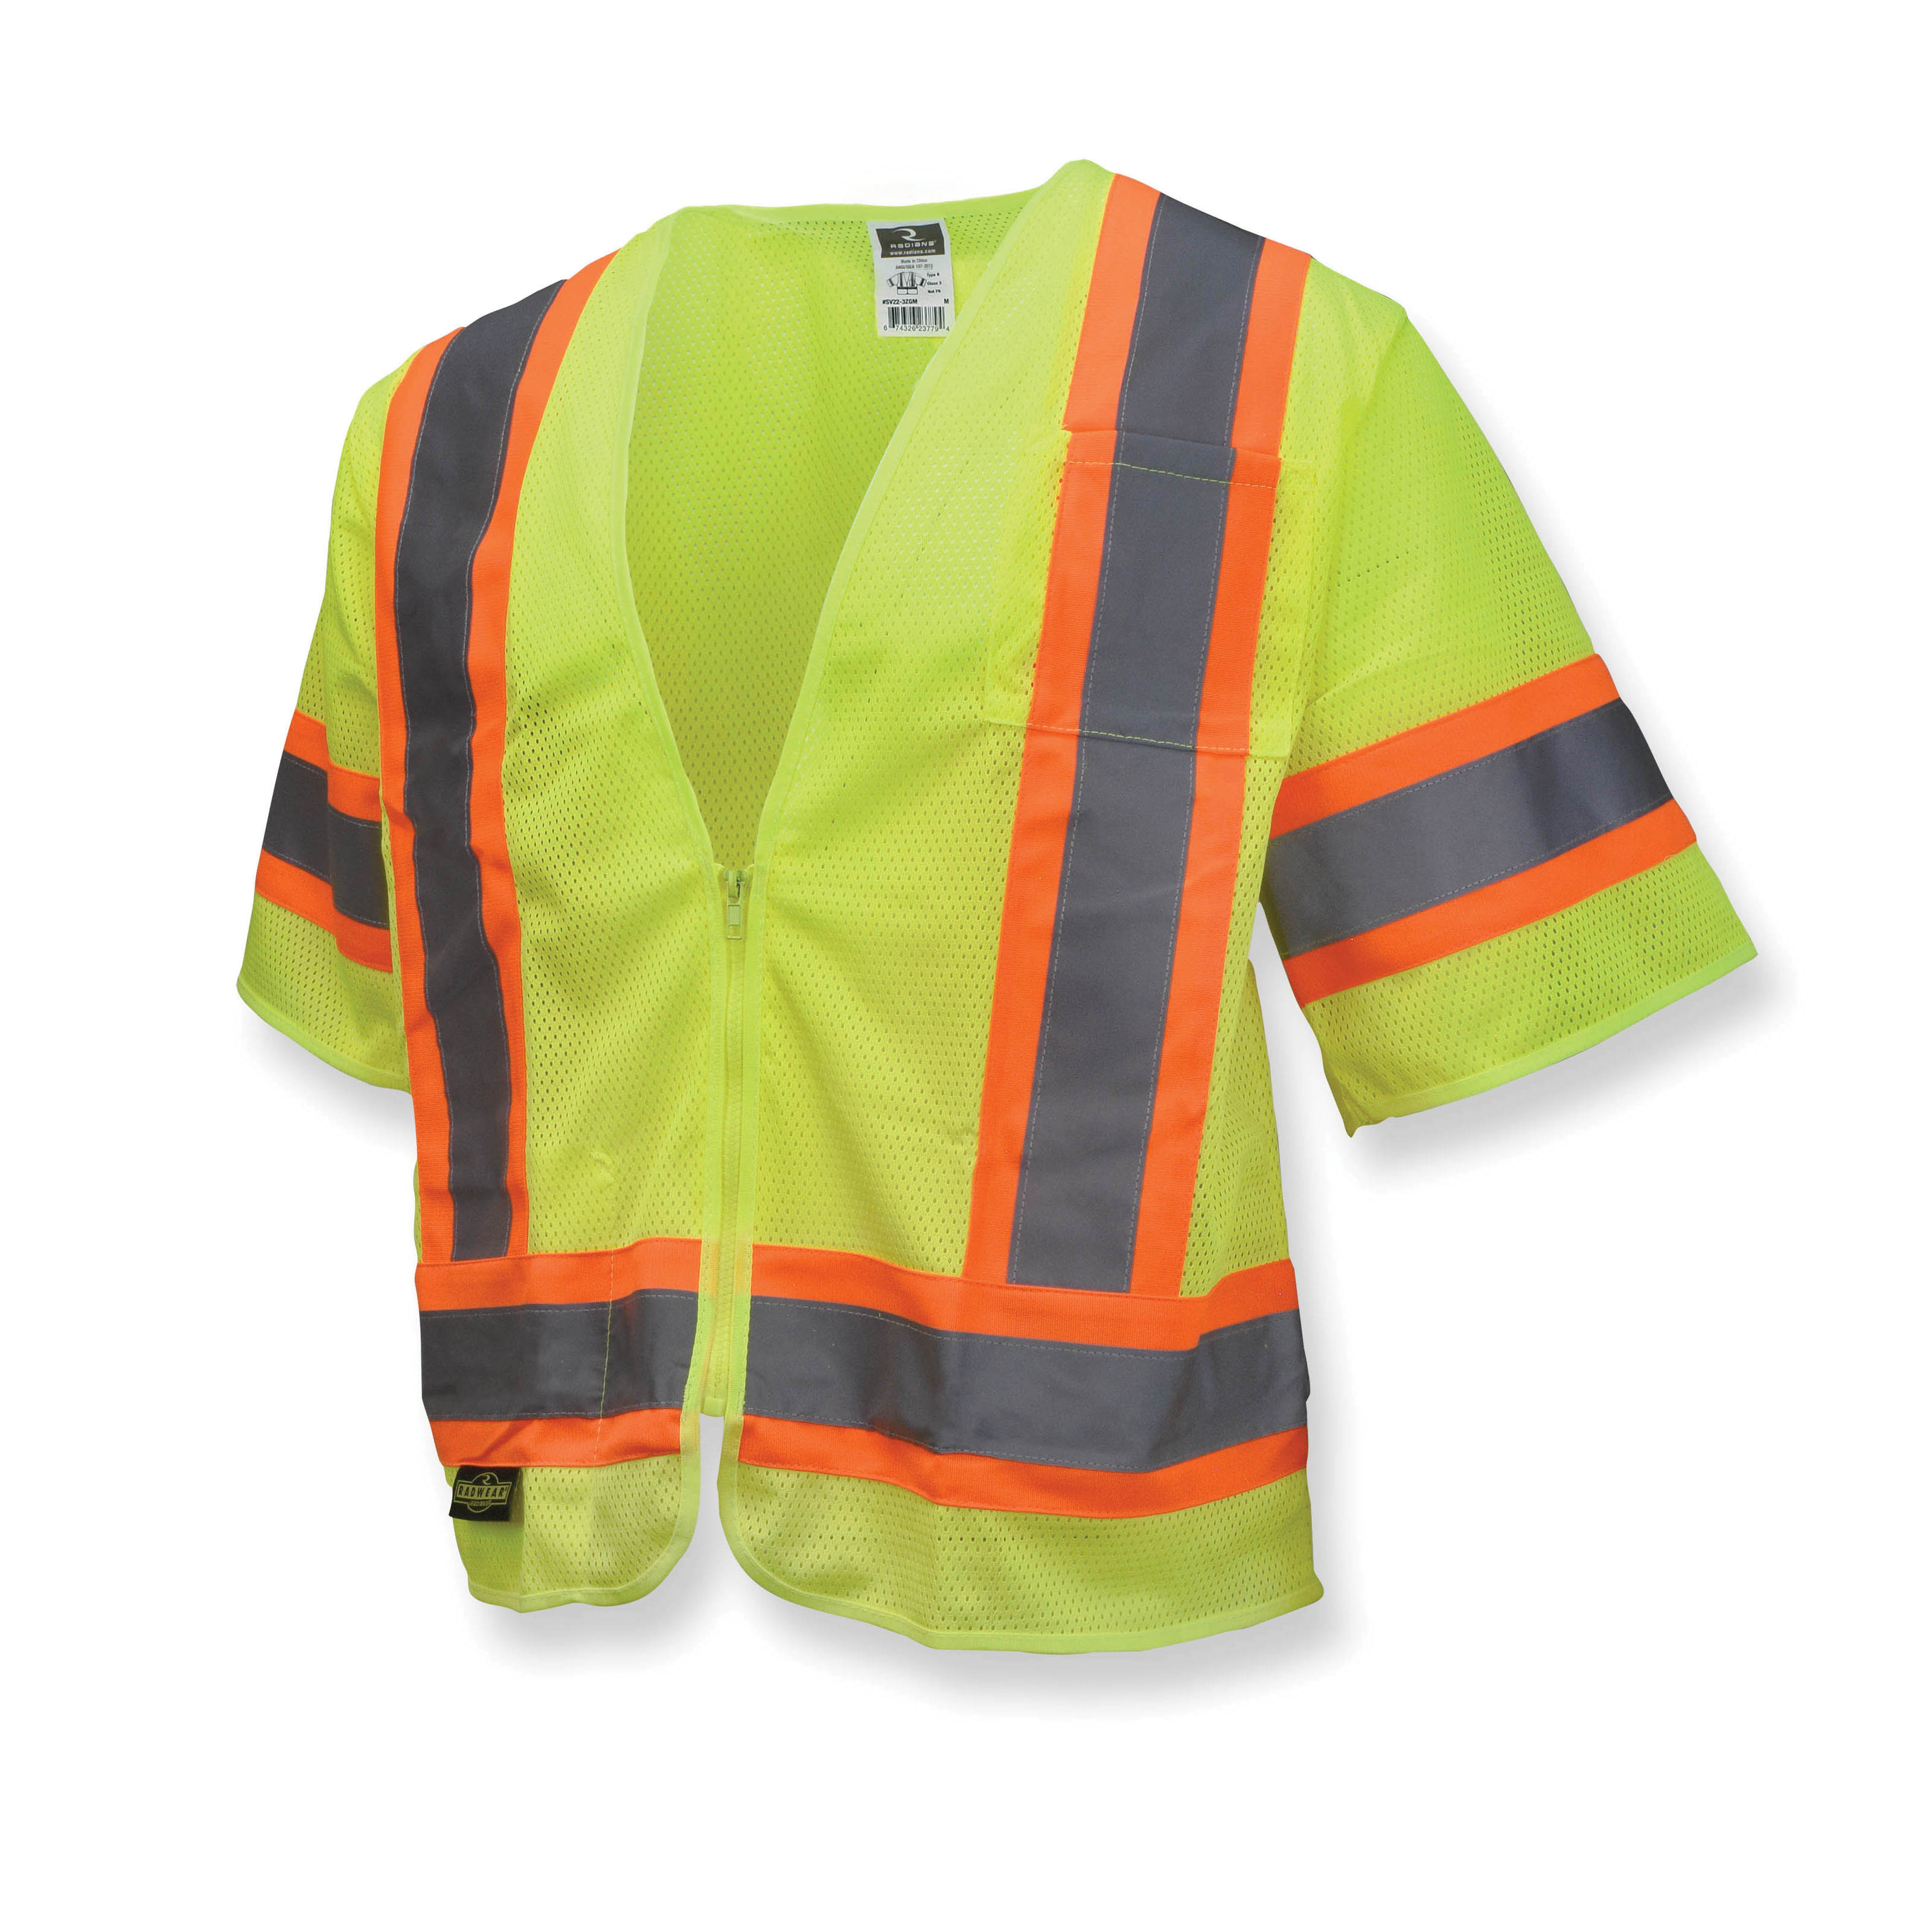 Radians® SV22-3ZGM Economy Safety Vest With 2-Tone Trim, L, Hi-Viz Green, Polyester Mesh, Zipper Closure, 2 Pockets, ANSI Class: Class 3, Specifications Met: ANSI/ISEA 107-2015 Type R